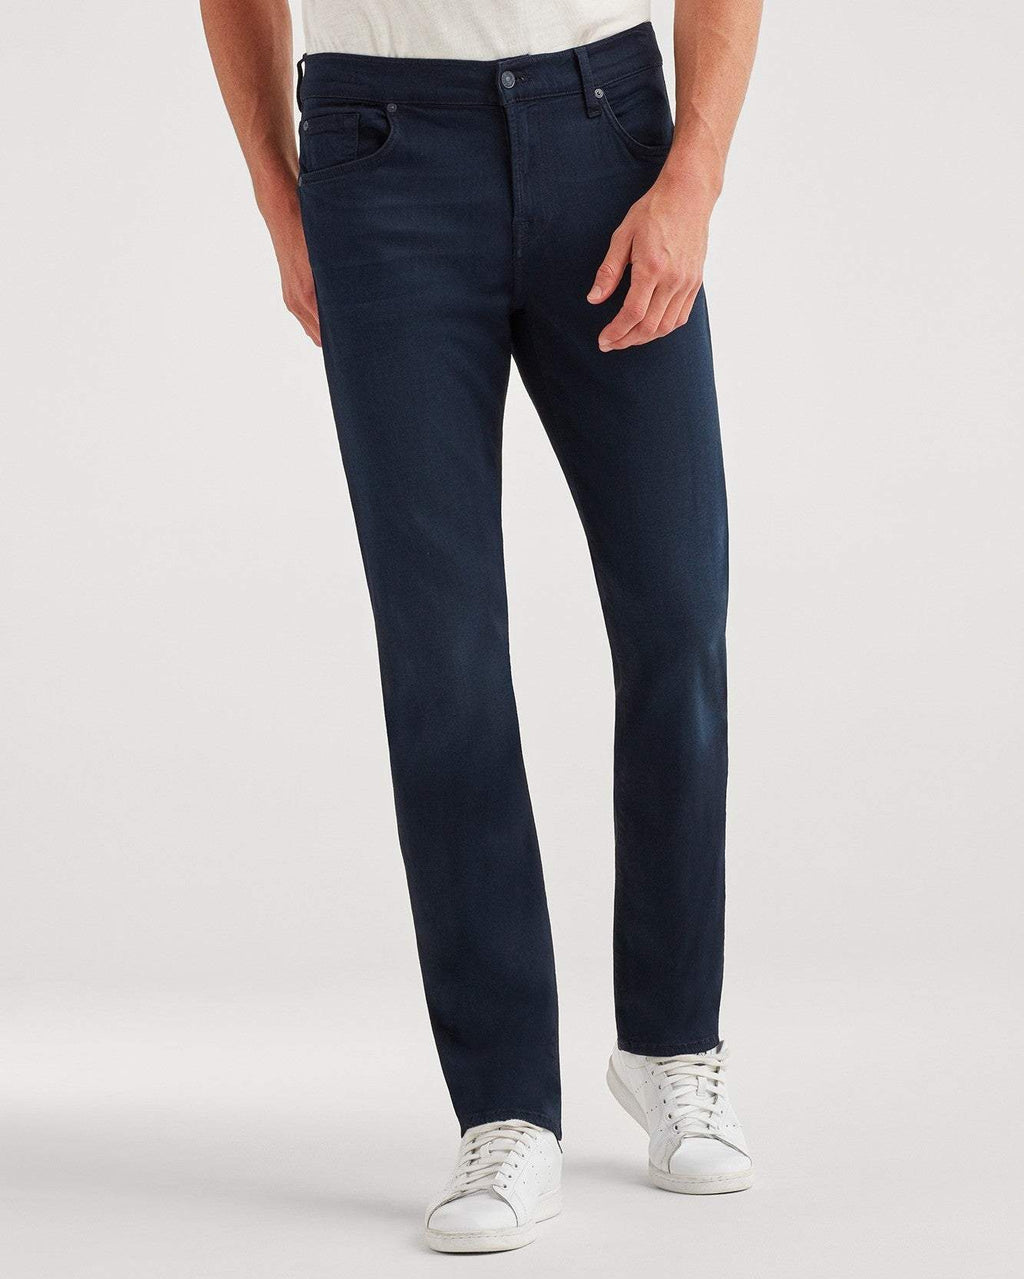 Luxe Sport Slimmy Pant